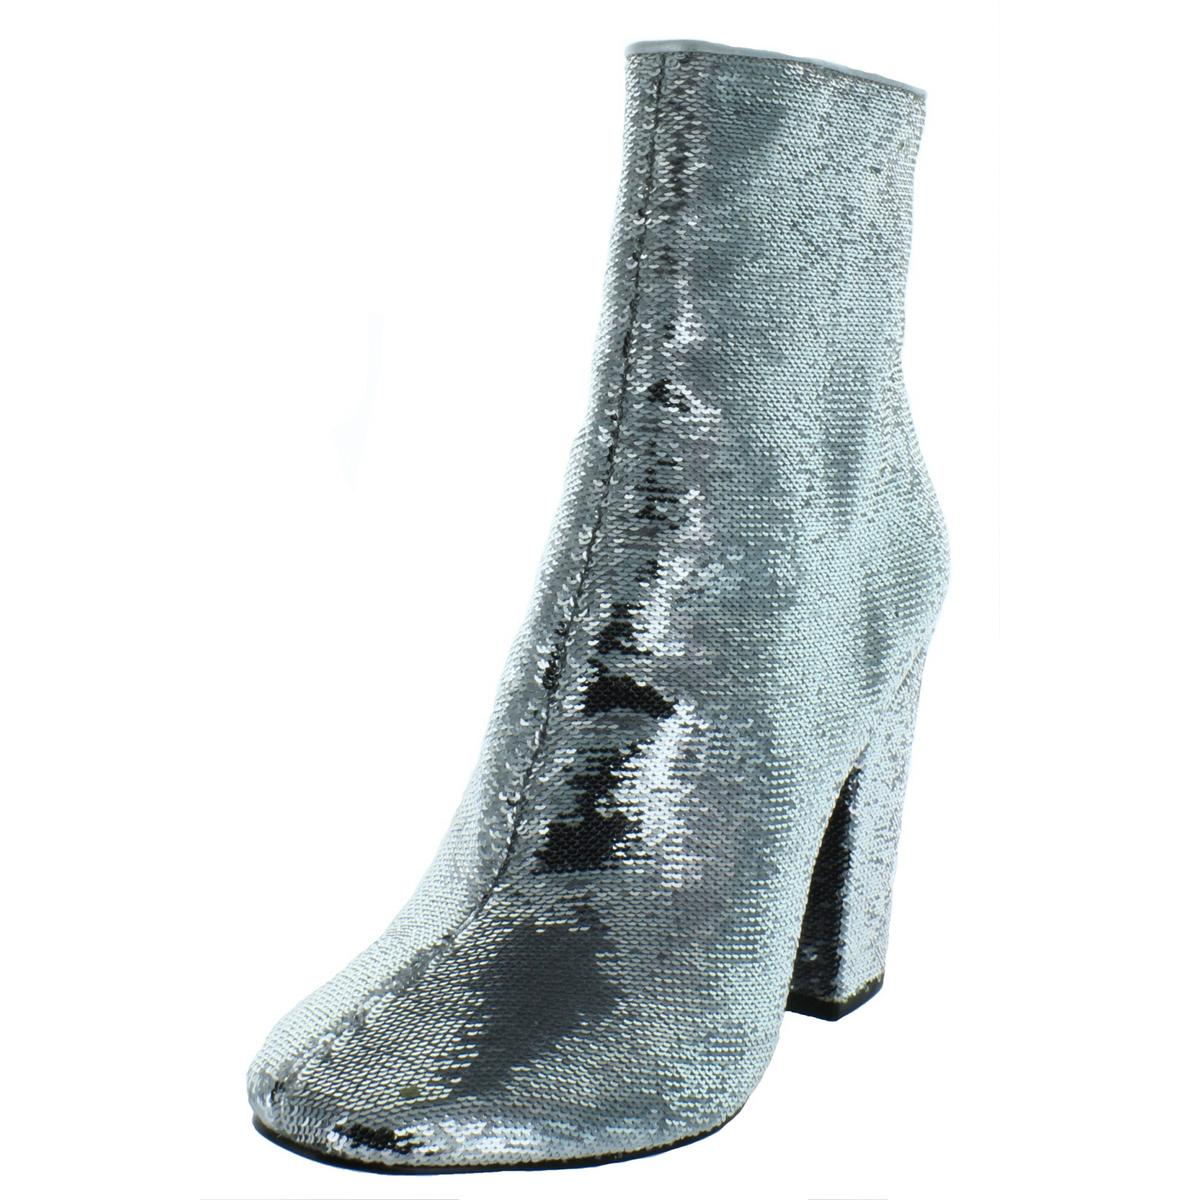 c6e72a0835c8b Details about Kendall + Kylie Womens Haedyn5 Sequined Block Heel Booties  Shoes BHFO 8149